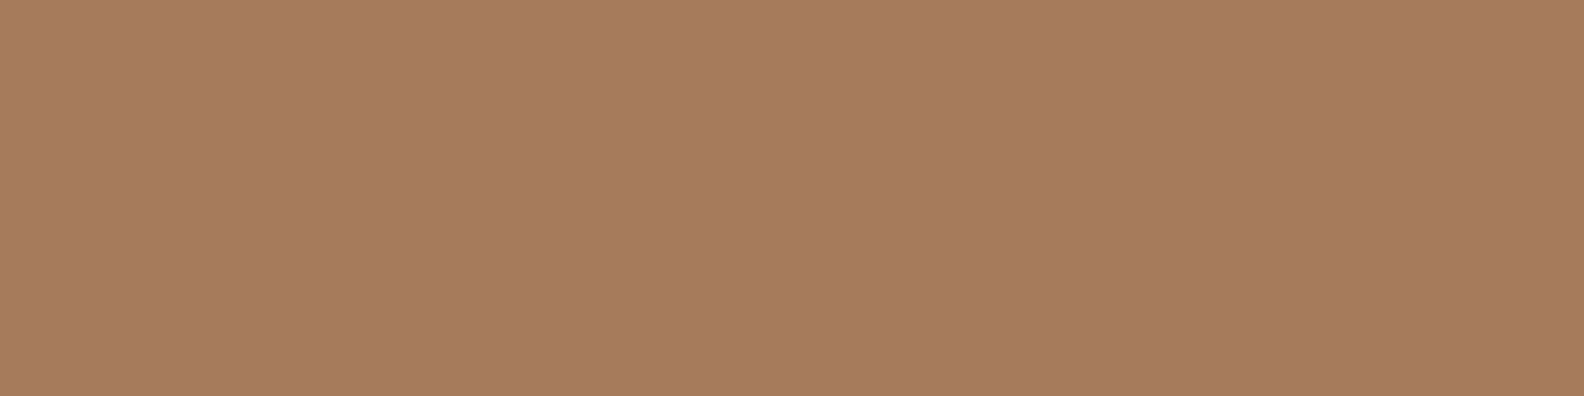 1584x396 Tuscan Tan Solid Color Background